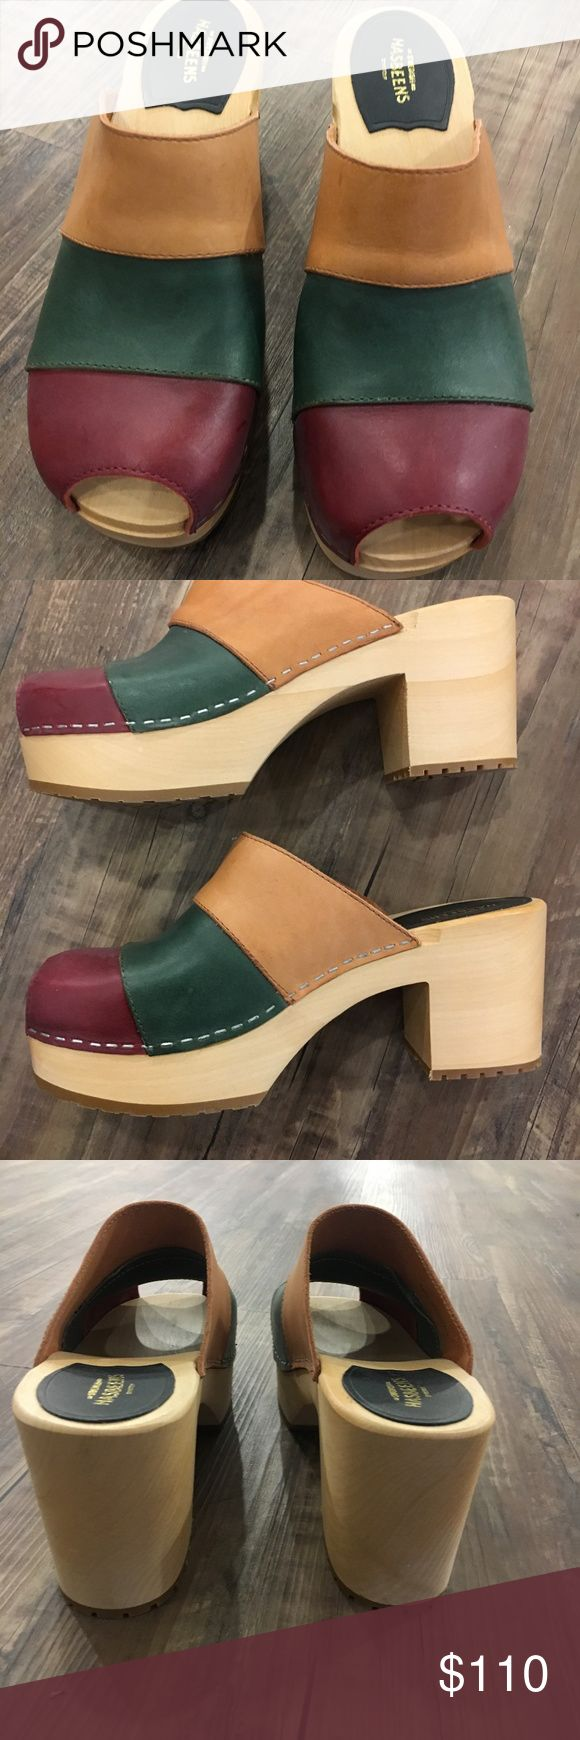 Swedish Hasbeen Color Combo Slip In Heel is 9.5 cm high (3.7 inches) Lime-tree wooden heel with rubber sole Italian natural grain leather, chrome free Swedish Hasbeens Shoes